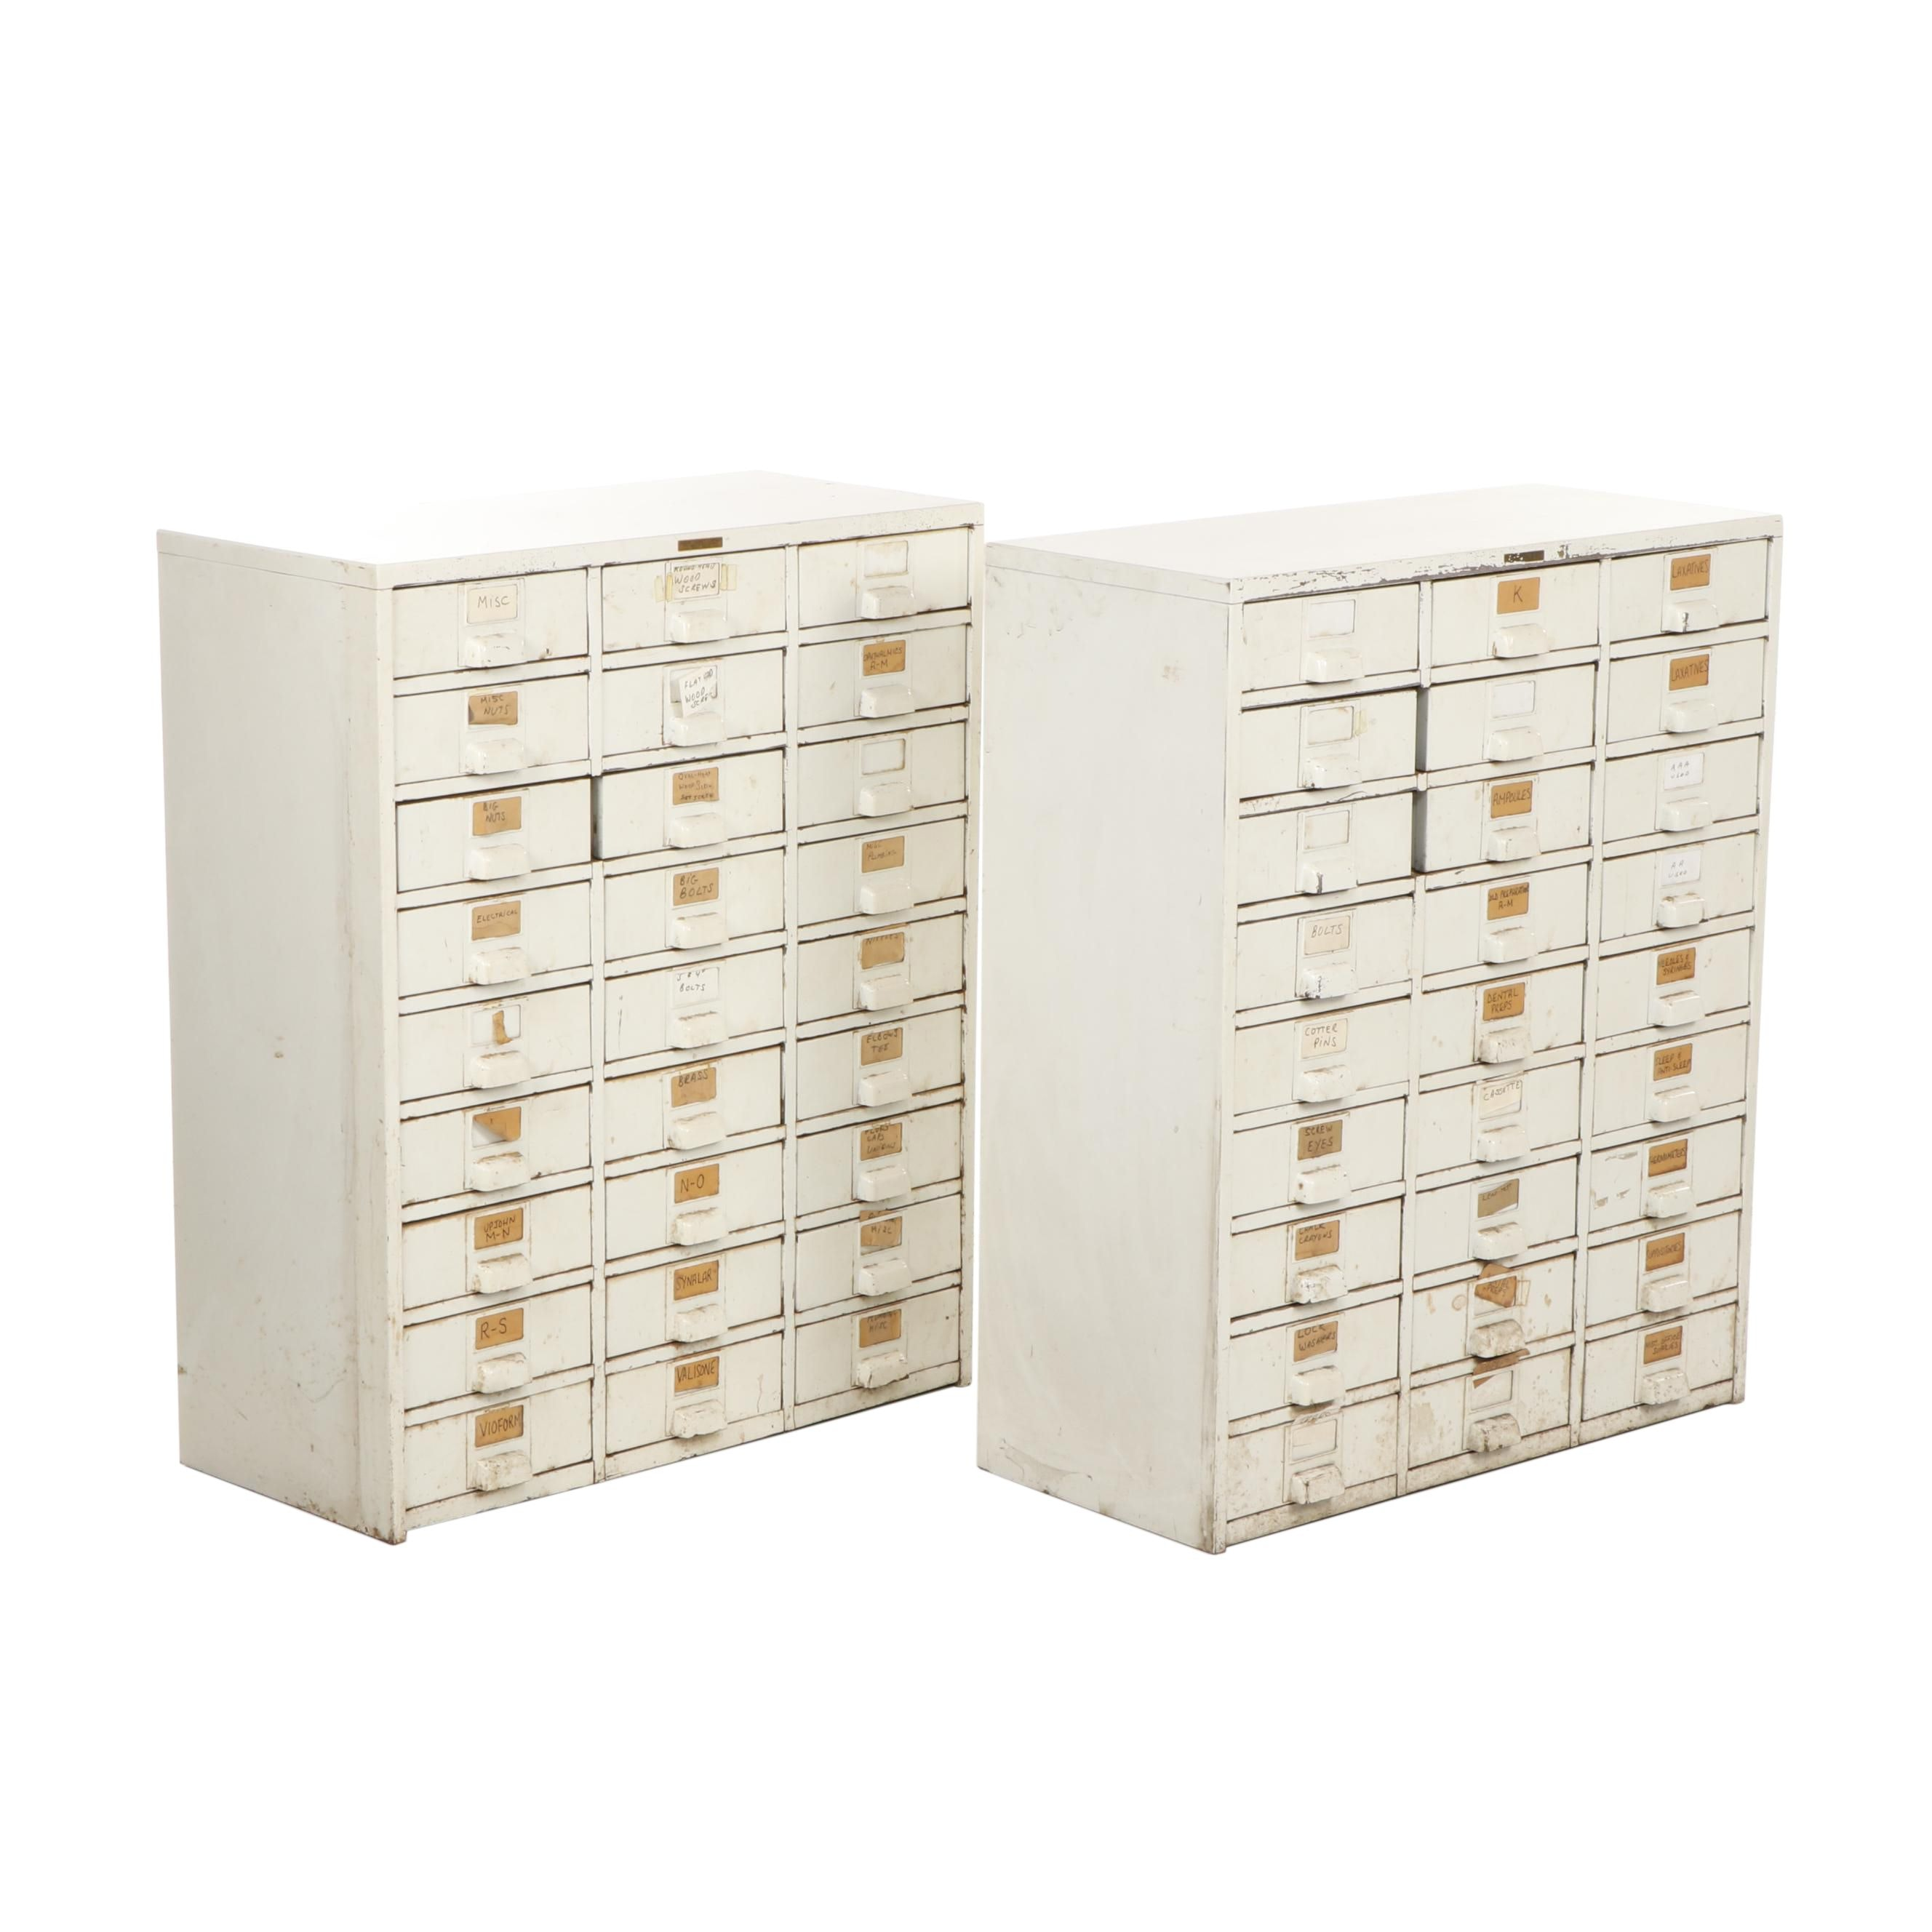 Pair of Hobart Cabinet Company Tool Cabinets